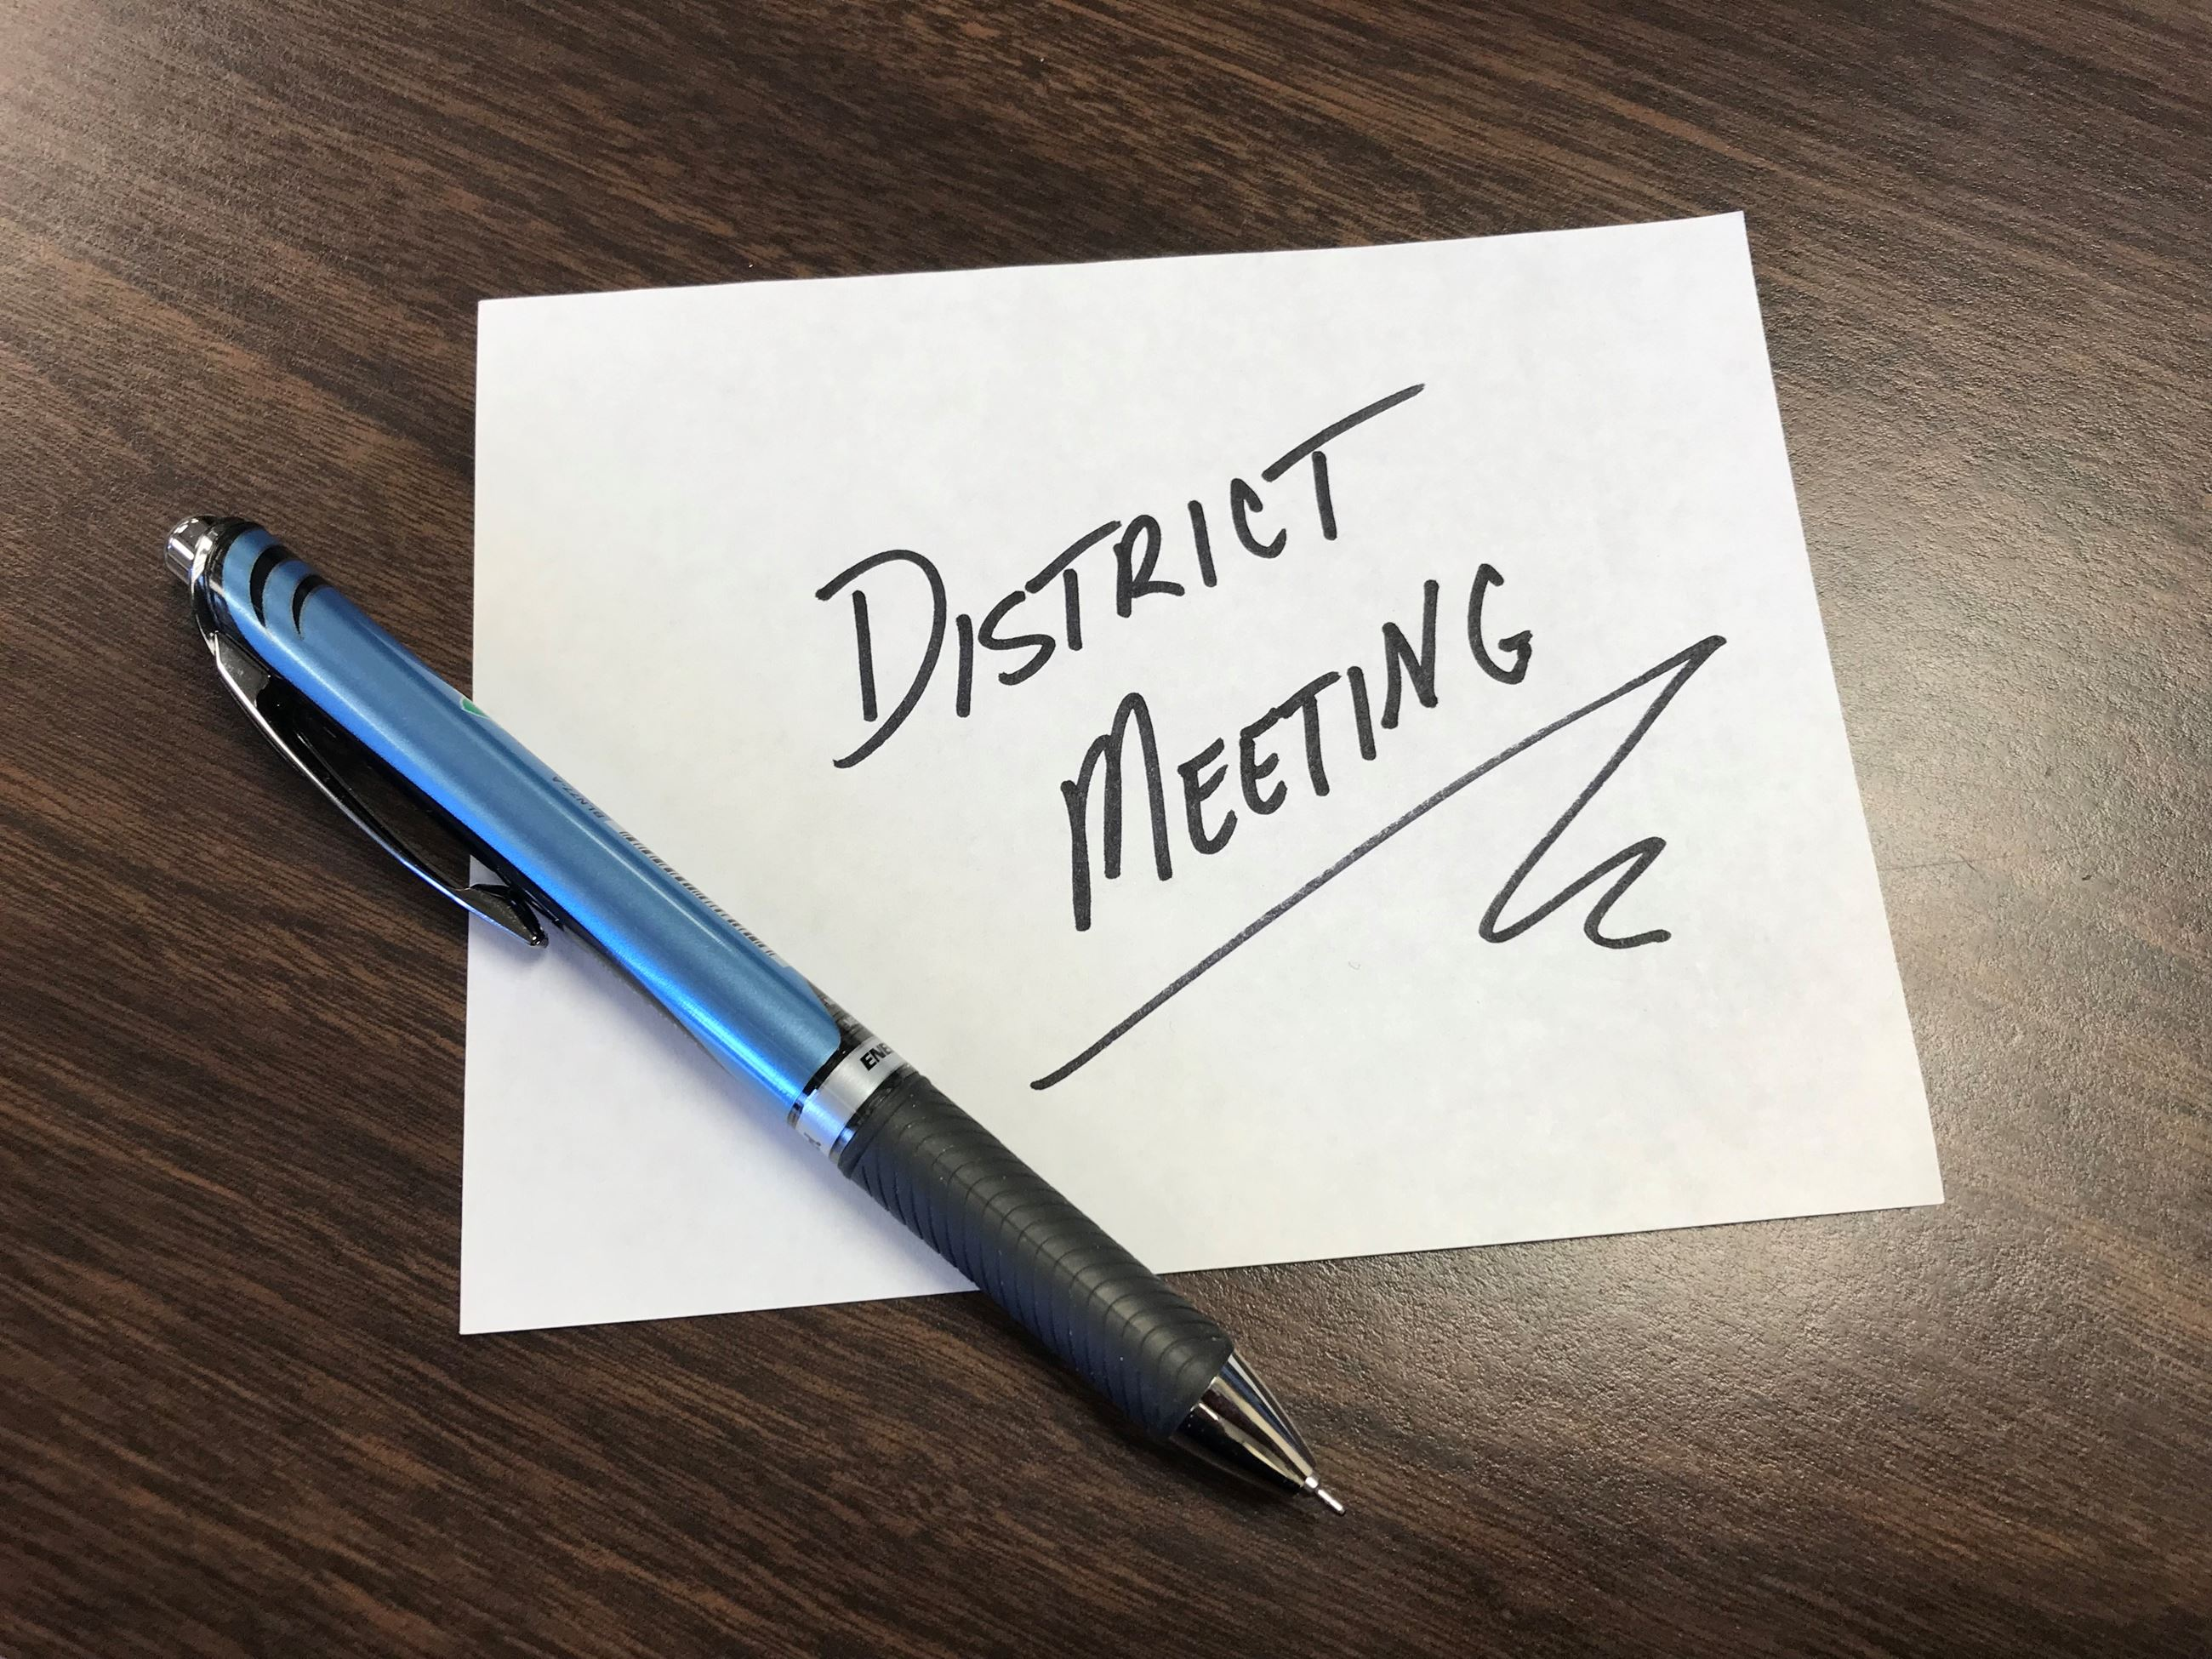 District Meeting Note